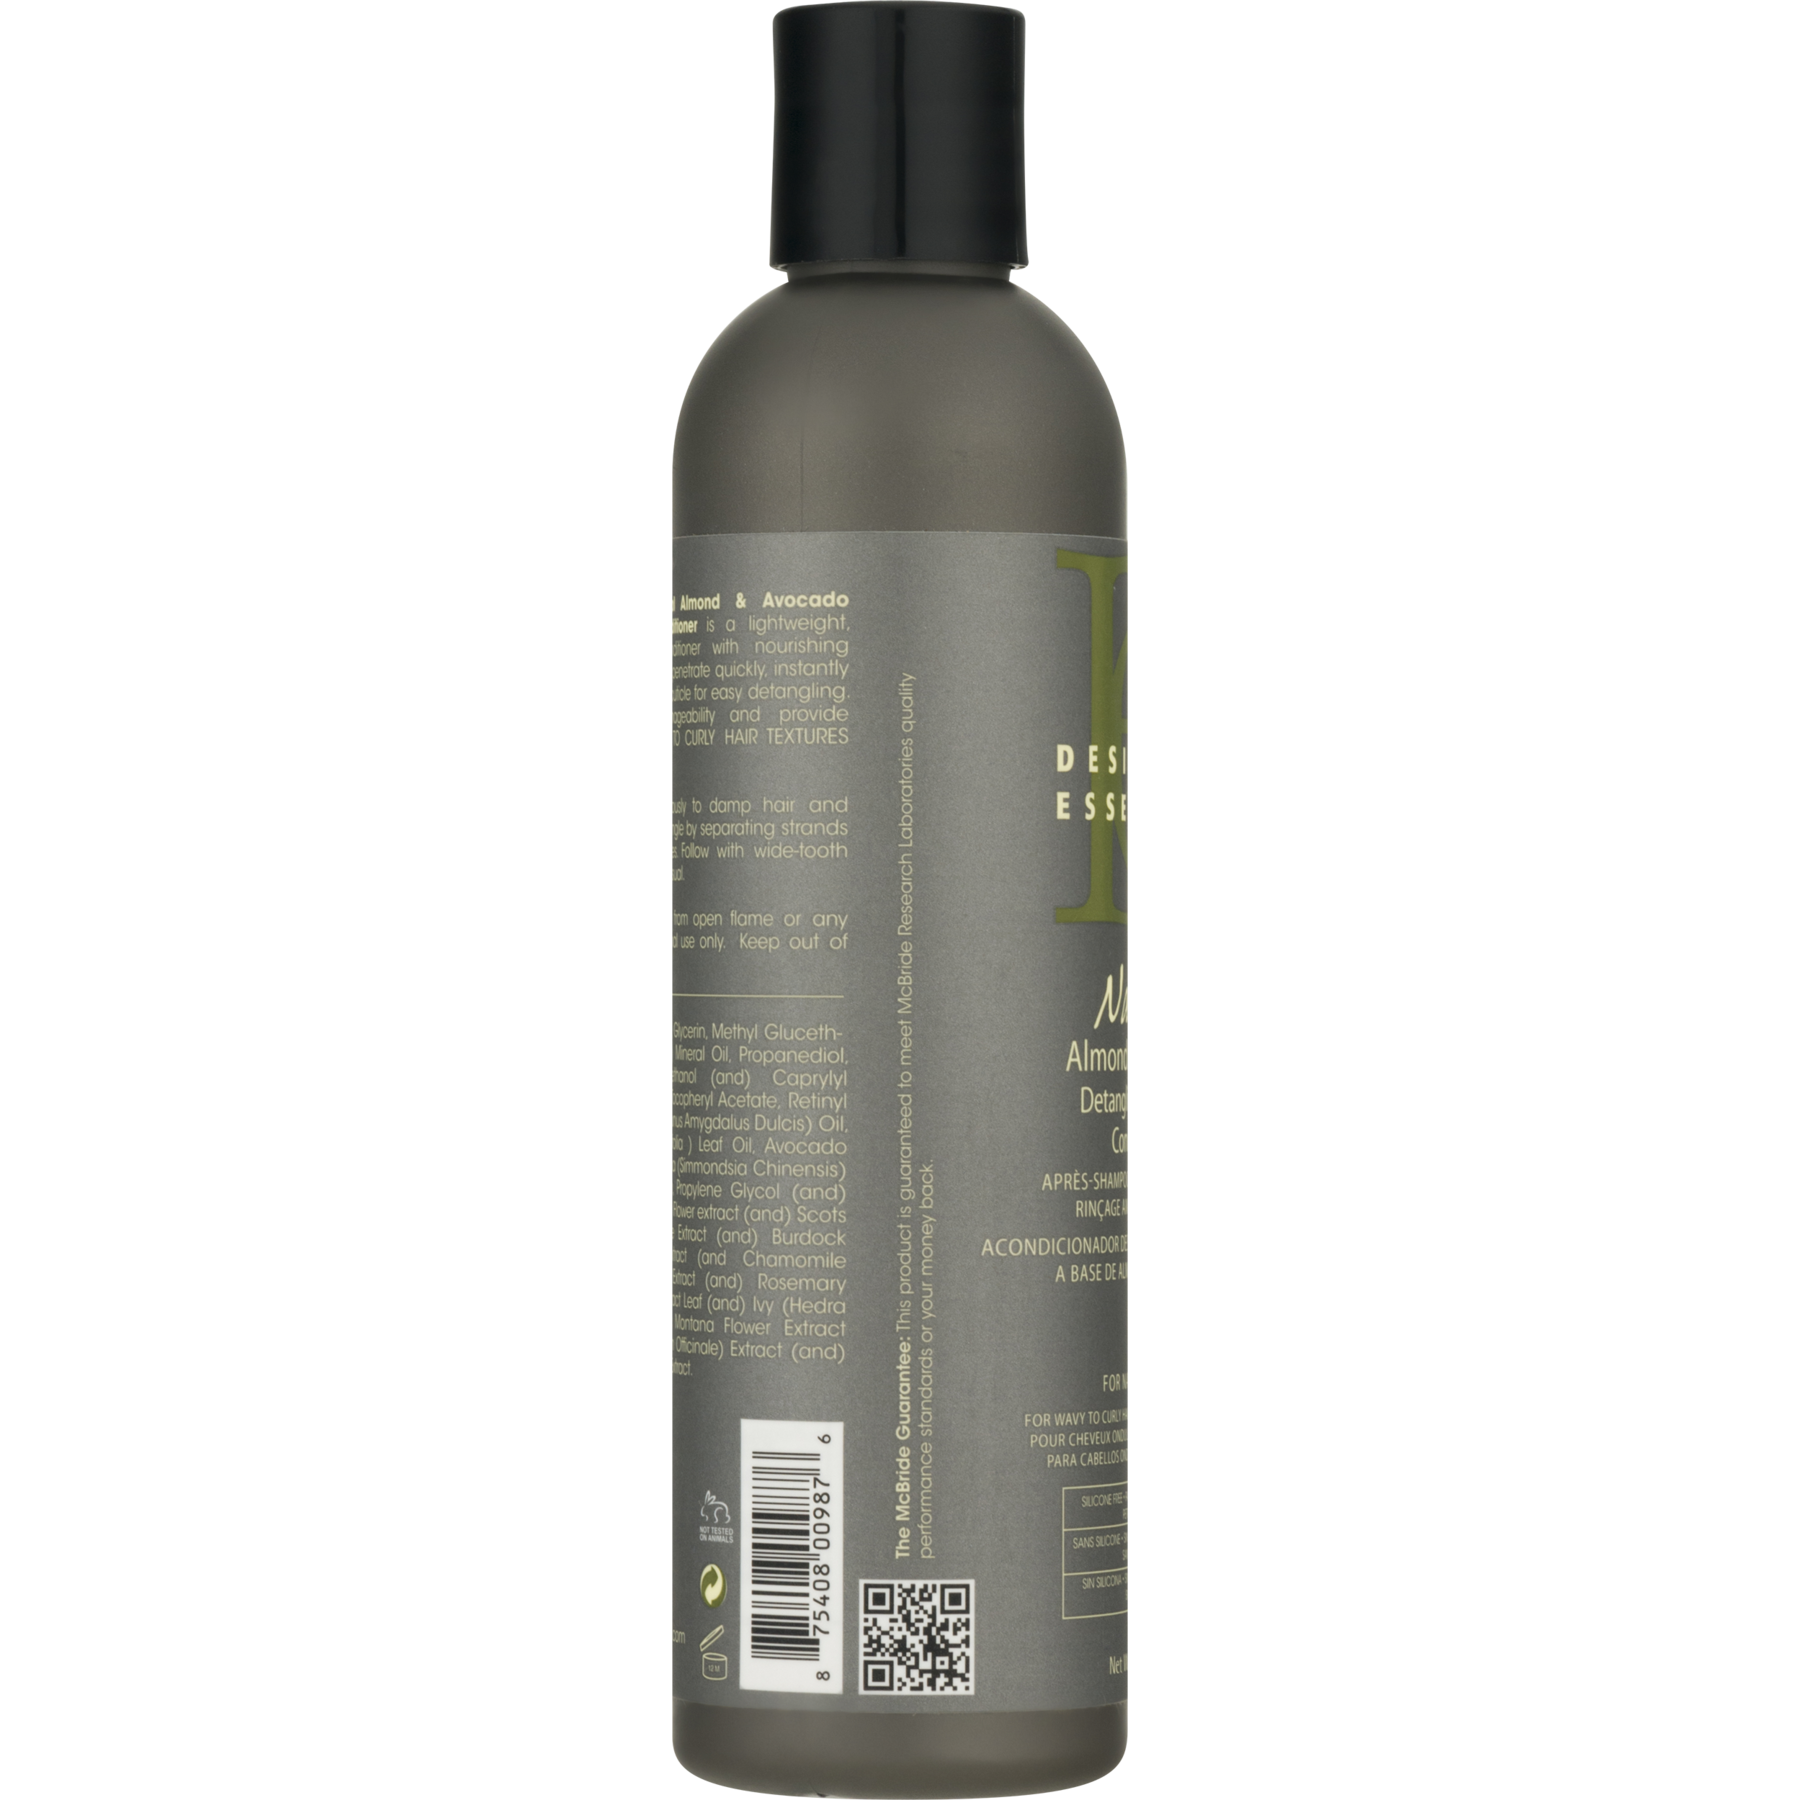 Design Essentials Natural Leave In Conditioner Reviews: Design Essentials Natural Detangling Leave-In Conditioner Almond rh:walmart.com,Design